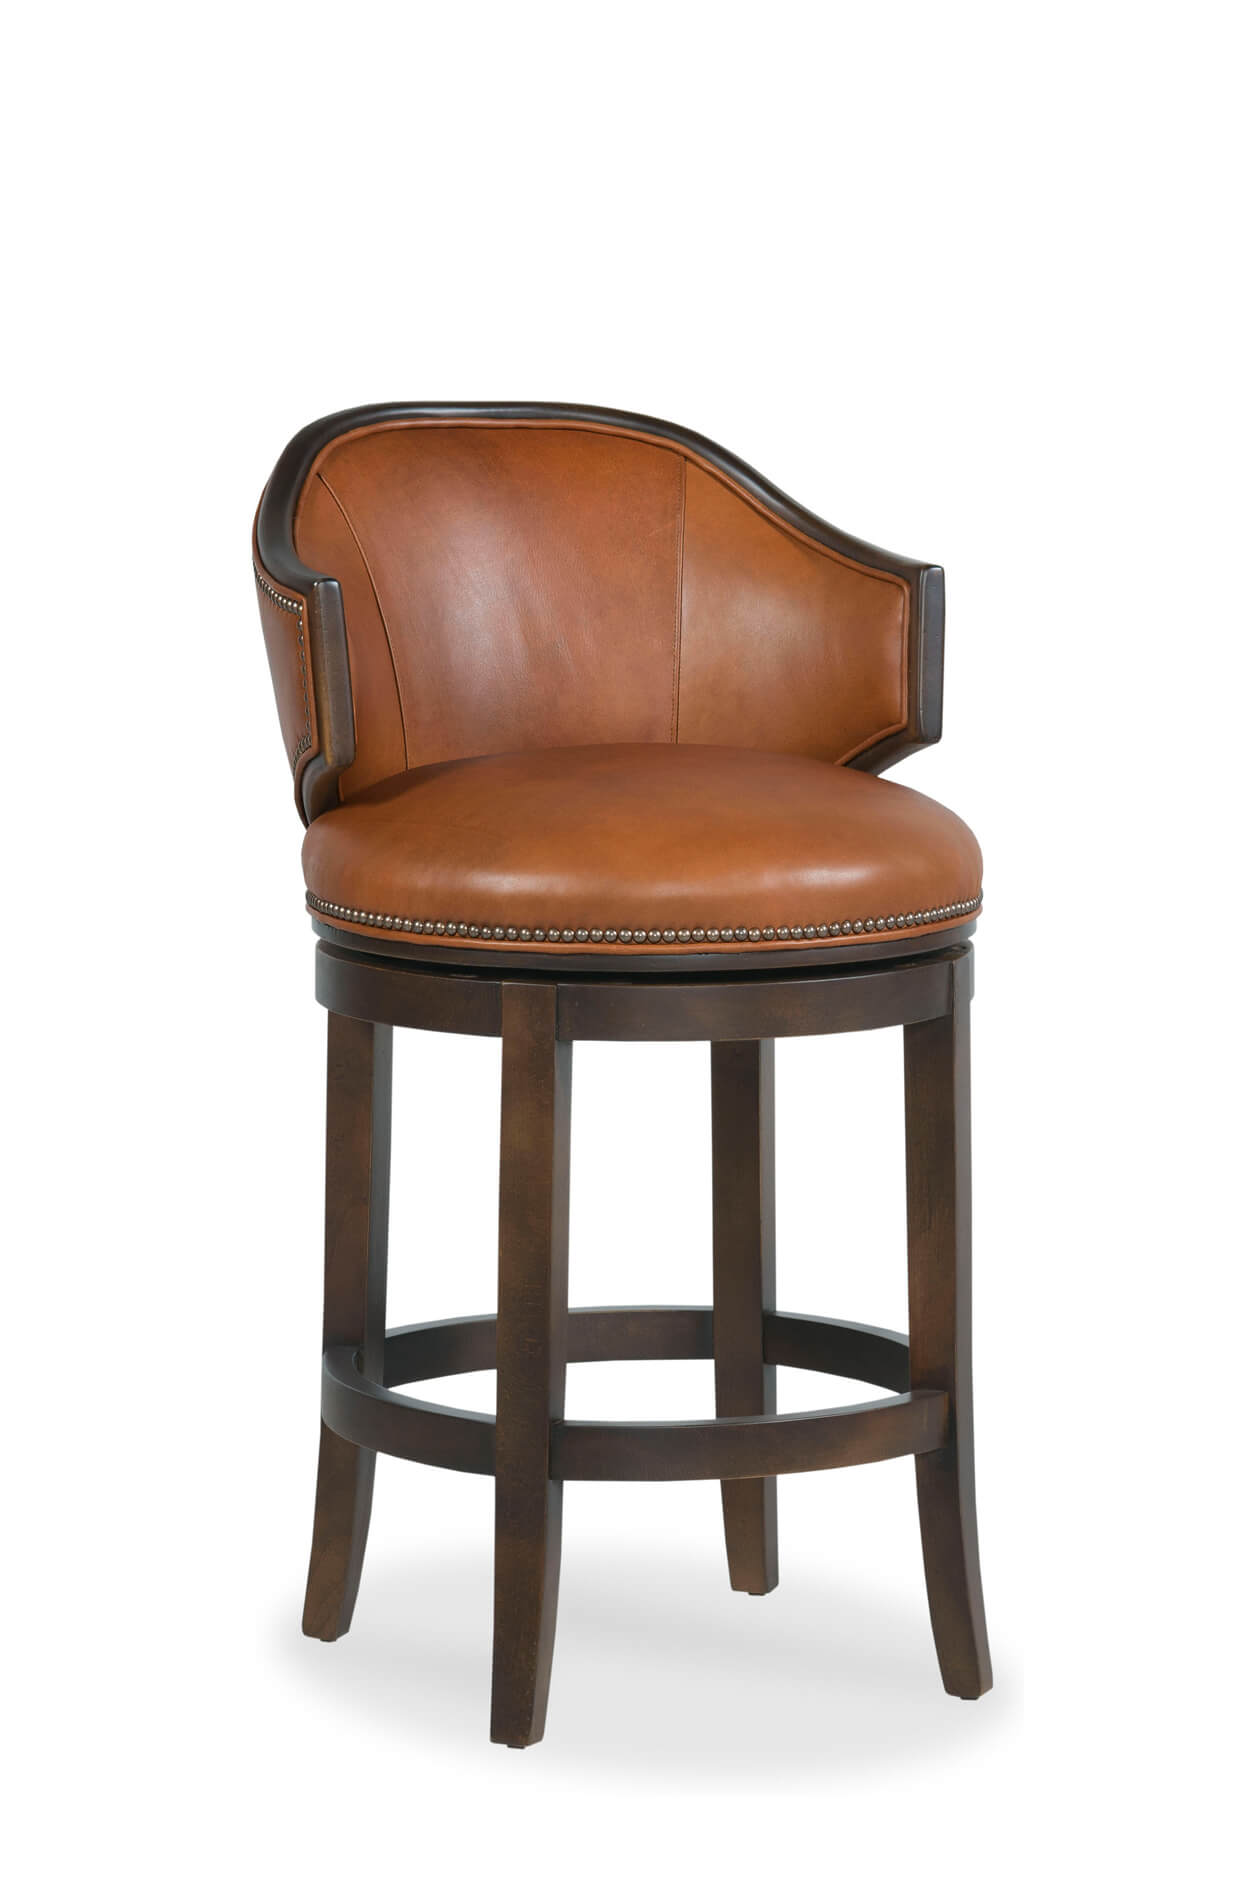 Astonishing Gimlet Wooden Upholstered Swivel Stool With Arms Uwap Interior Chair Design Uwaporg